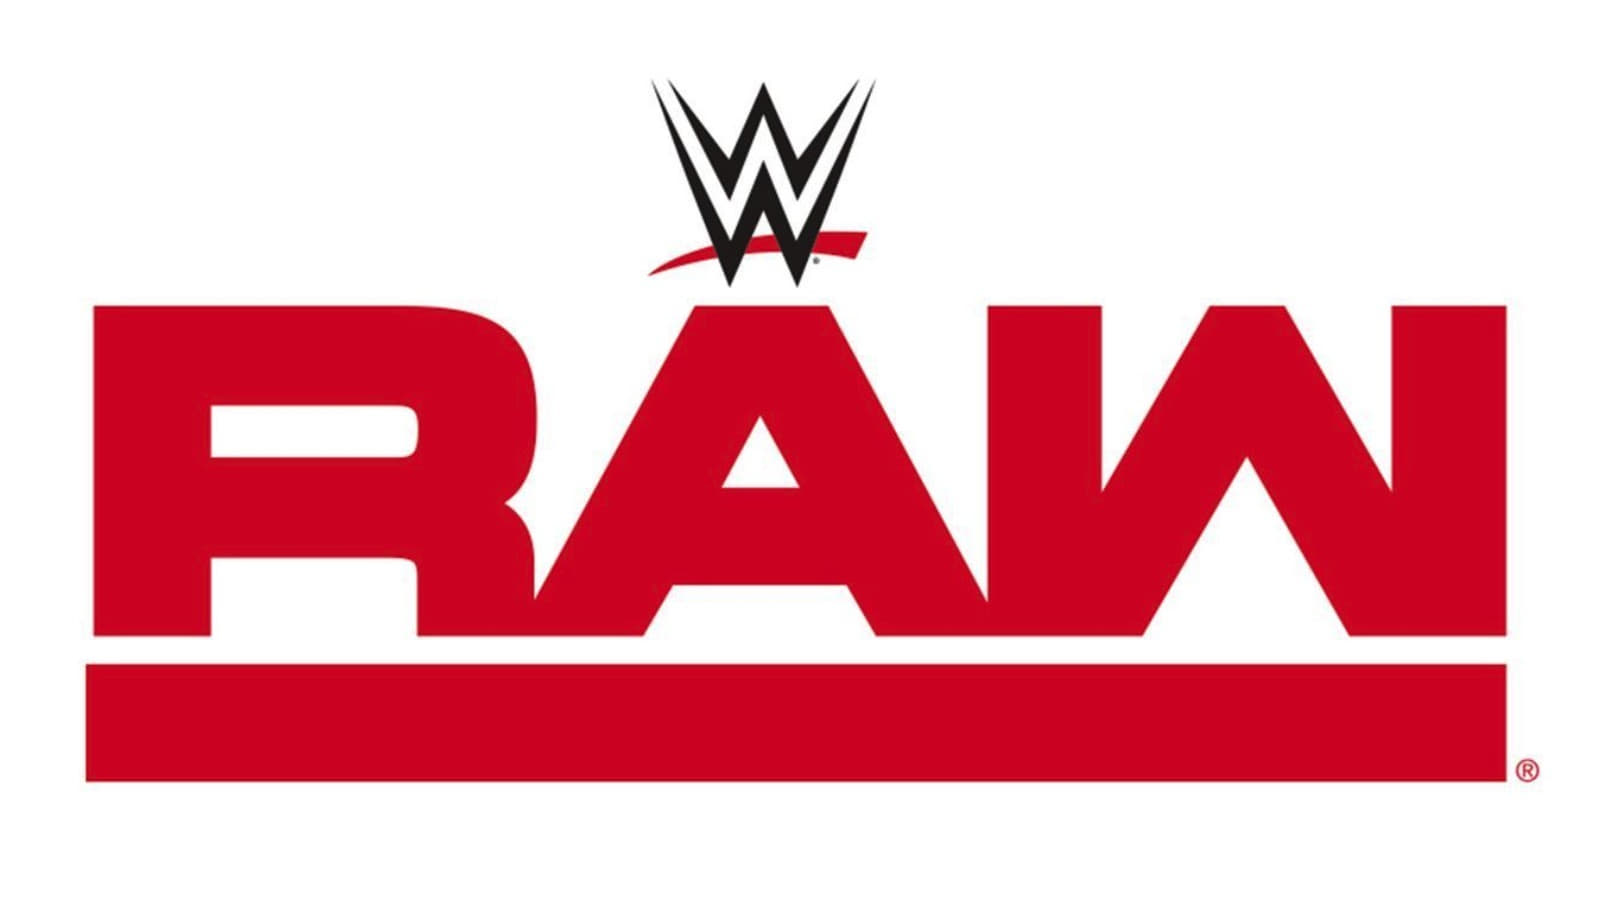 WWE Raw - Season 1 Episode 16 : RAW 16 (1970)